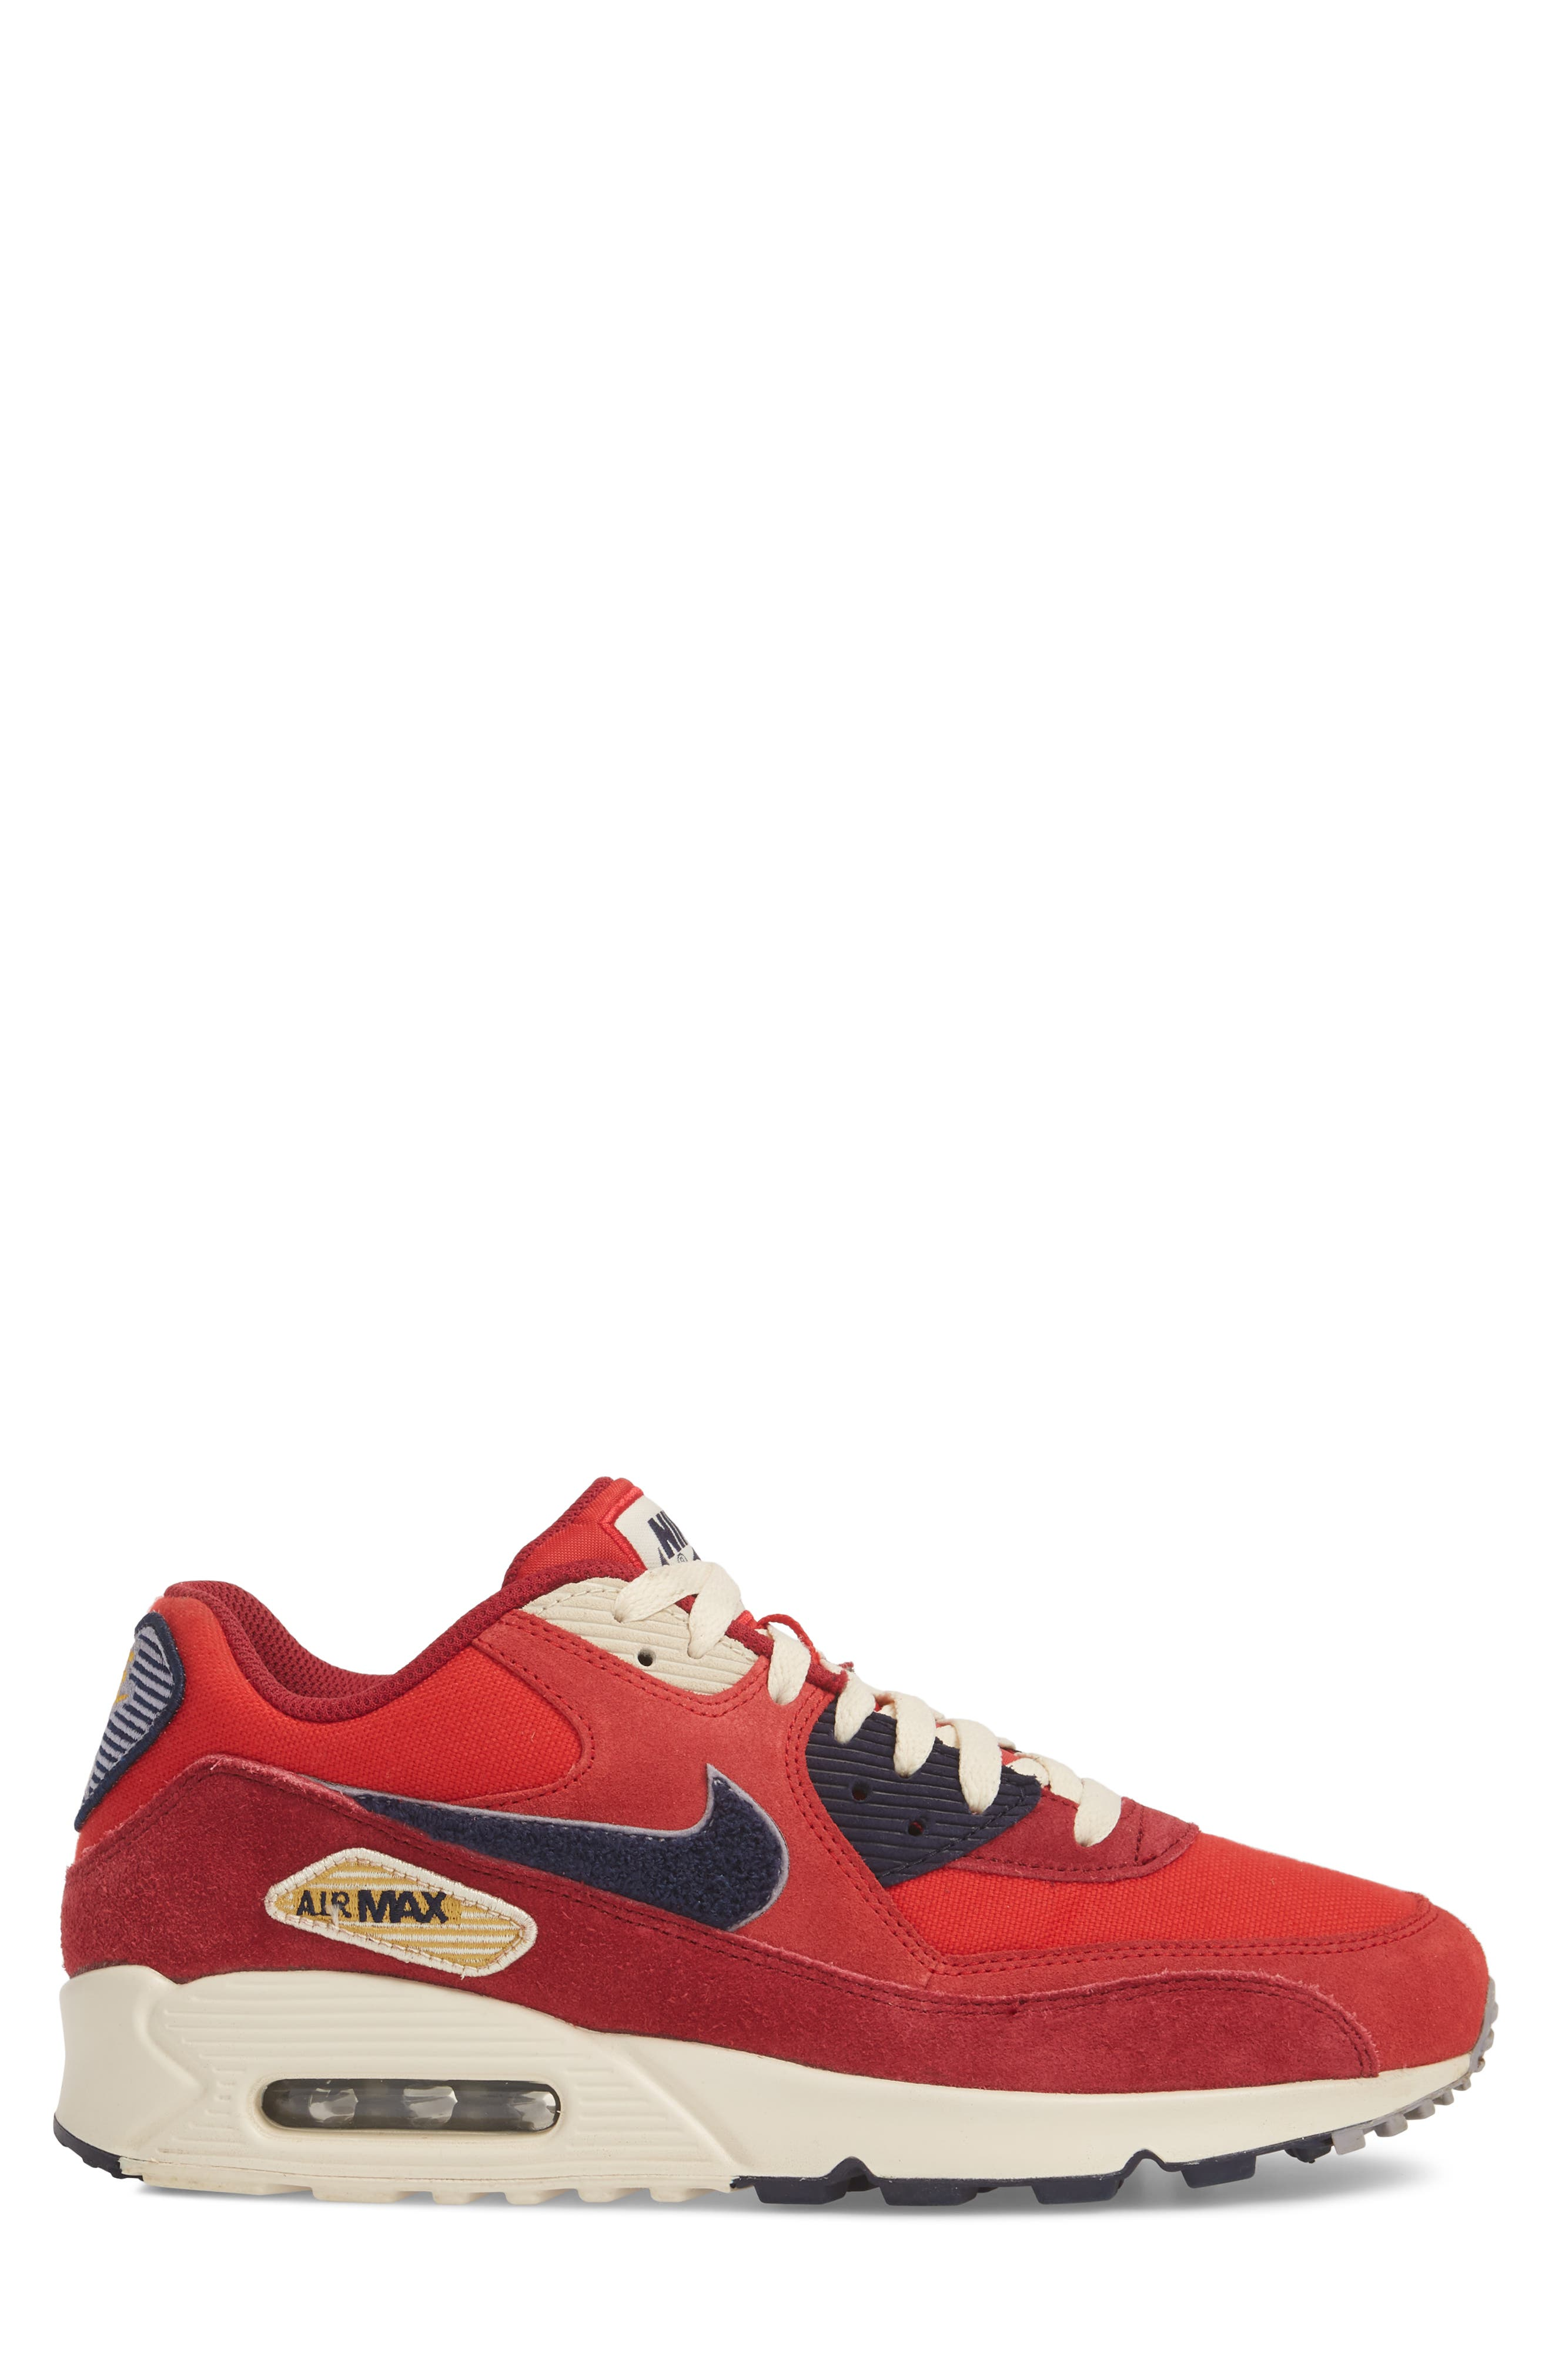 Air Max 90 Premium Sneaker,                             Alternate thumbnail 8, color,